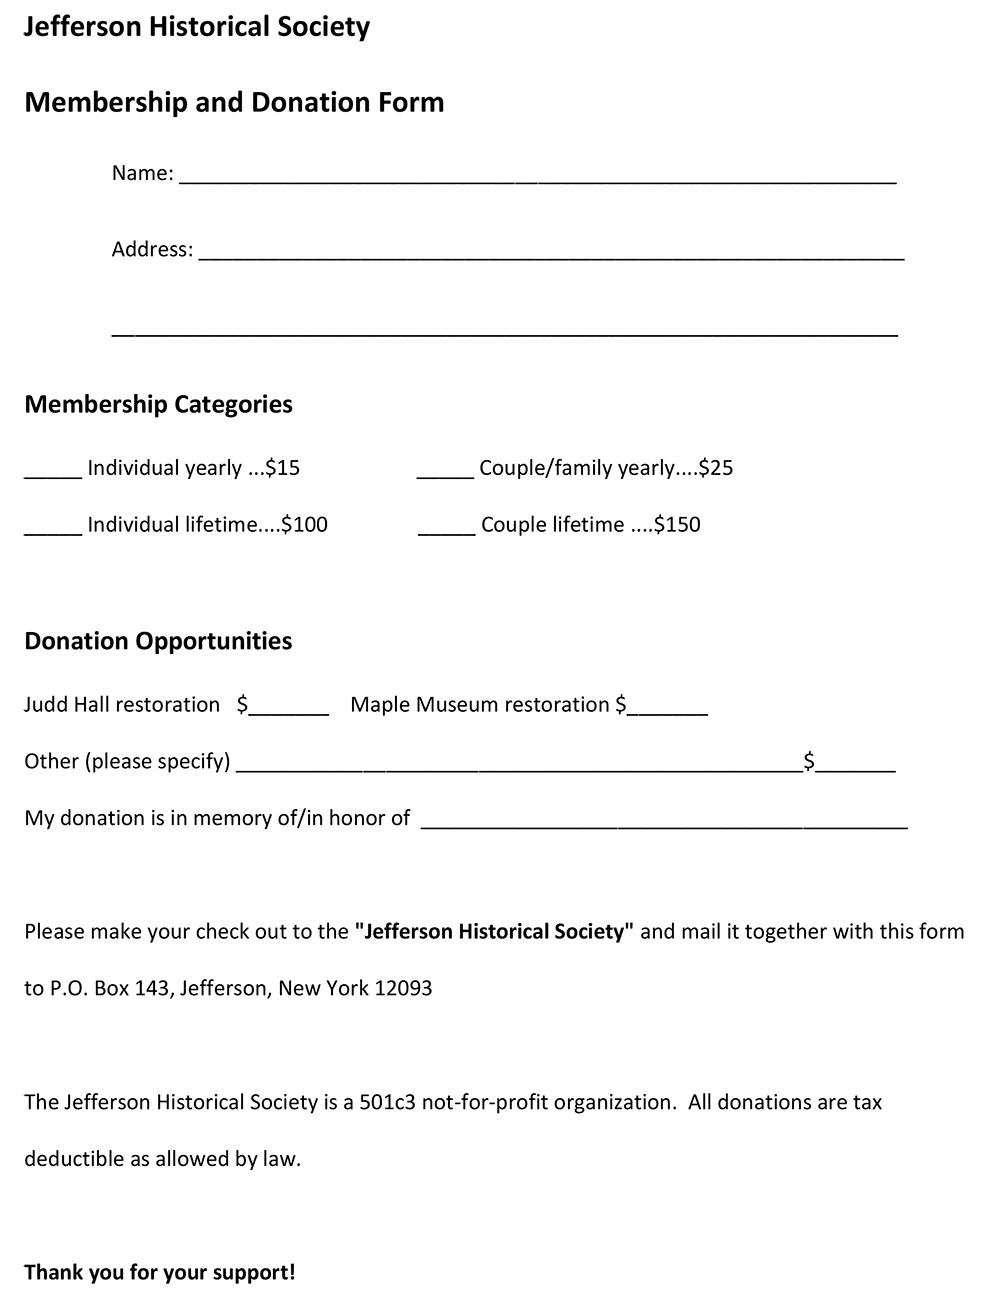 JHS Membership and donation form